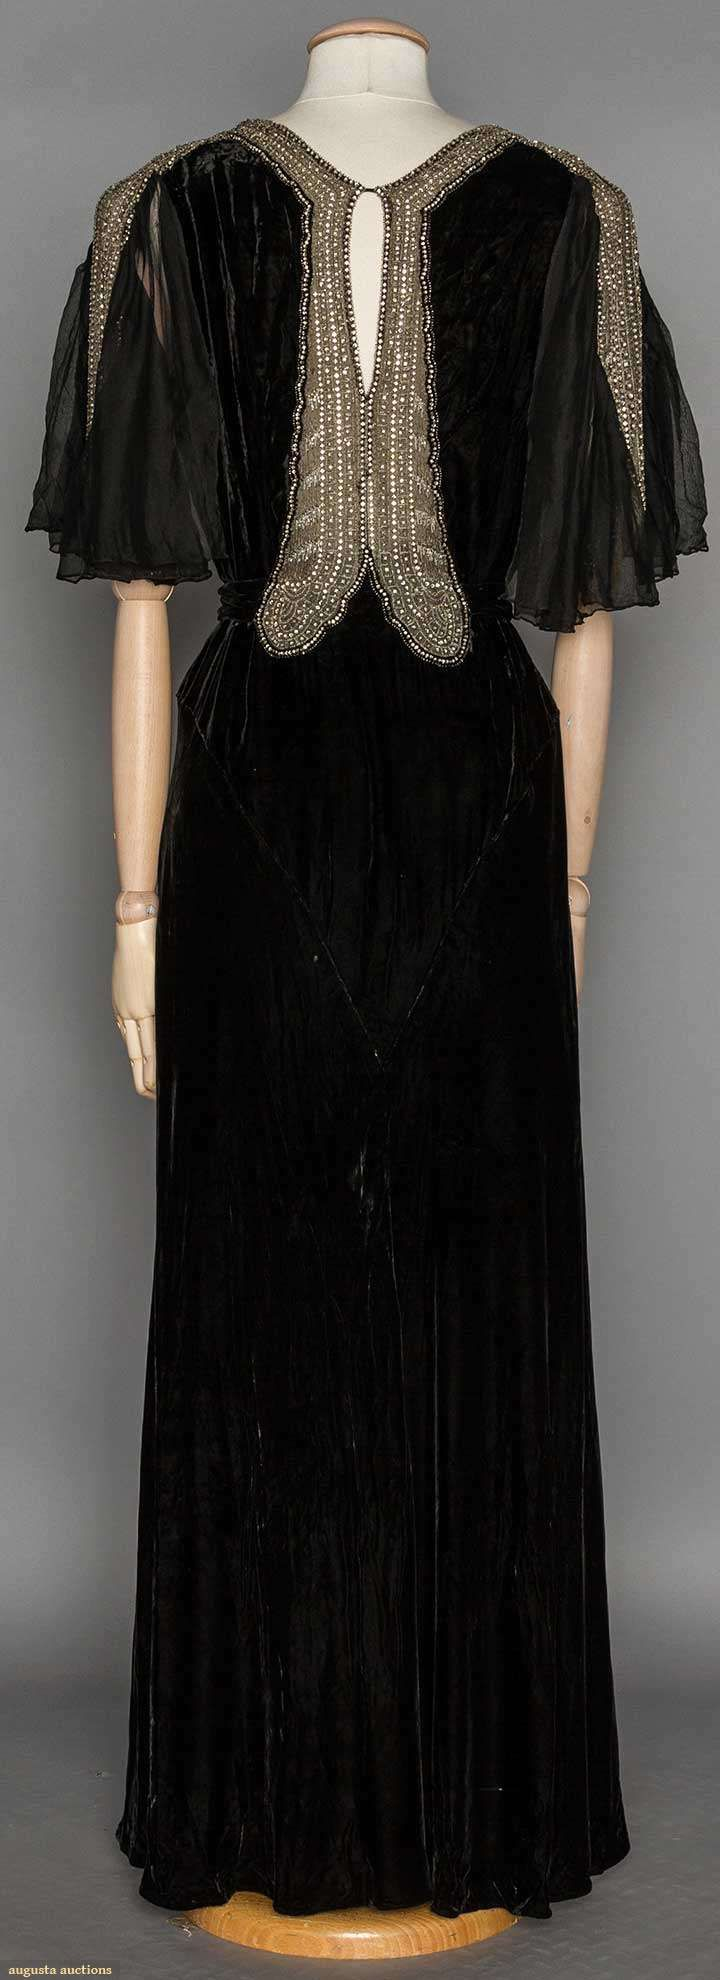 RHINESTONE TRIMMED EVENING GOWN, 1930's | Black silk velvet, chiffon flutter short sleeves, key-hole back, silver metallic w/ rhinestone neck & sleeve trim (back view)